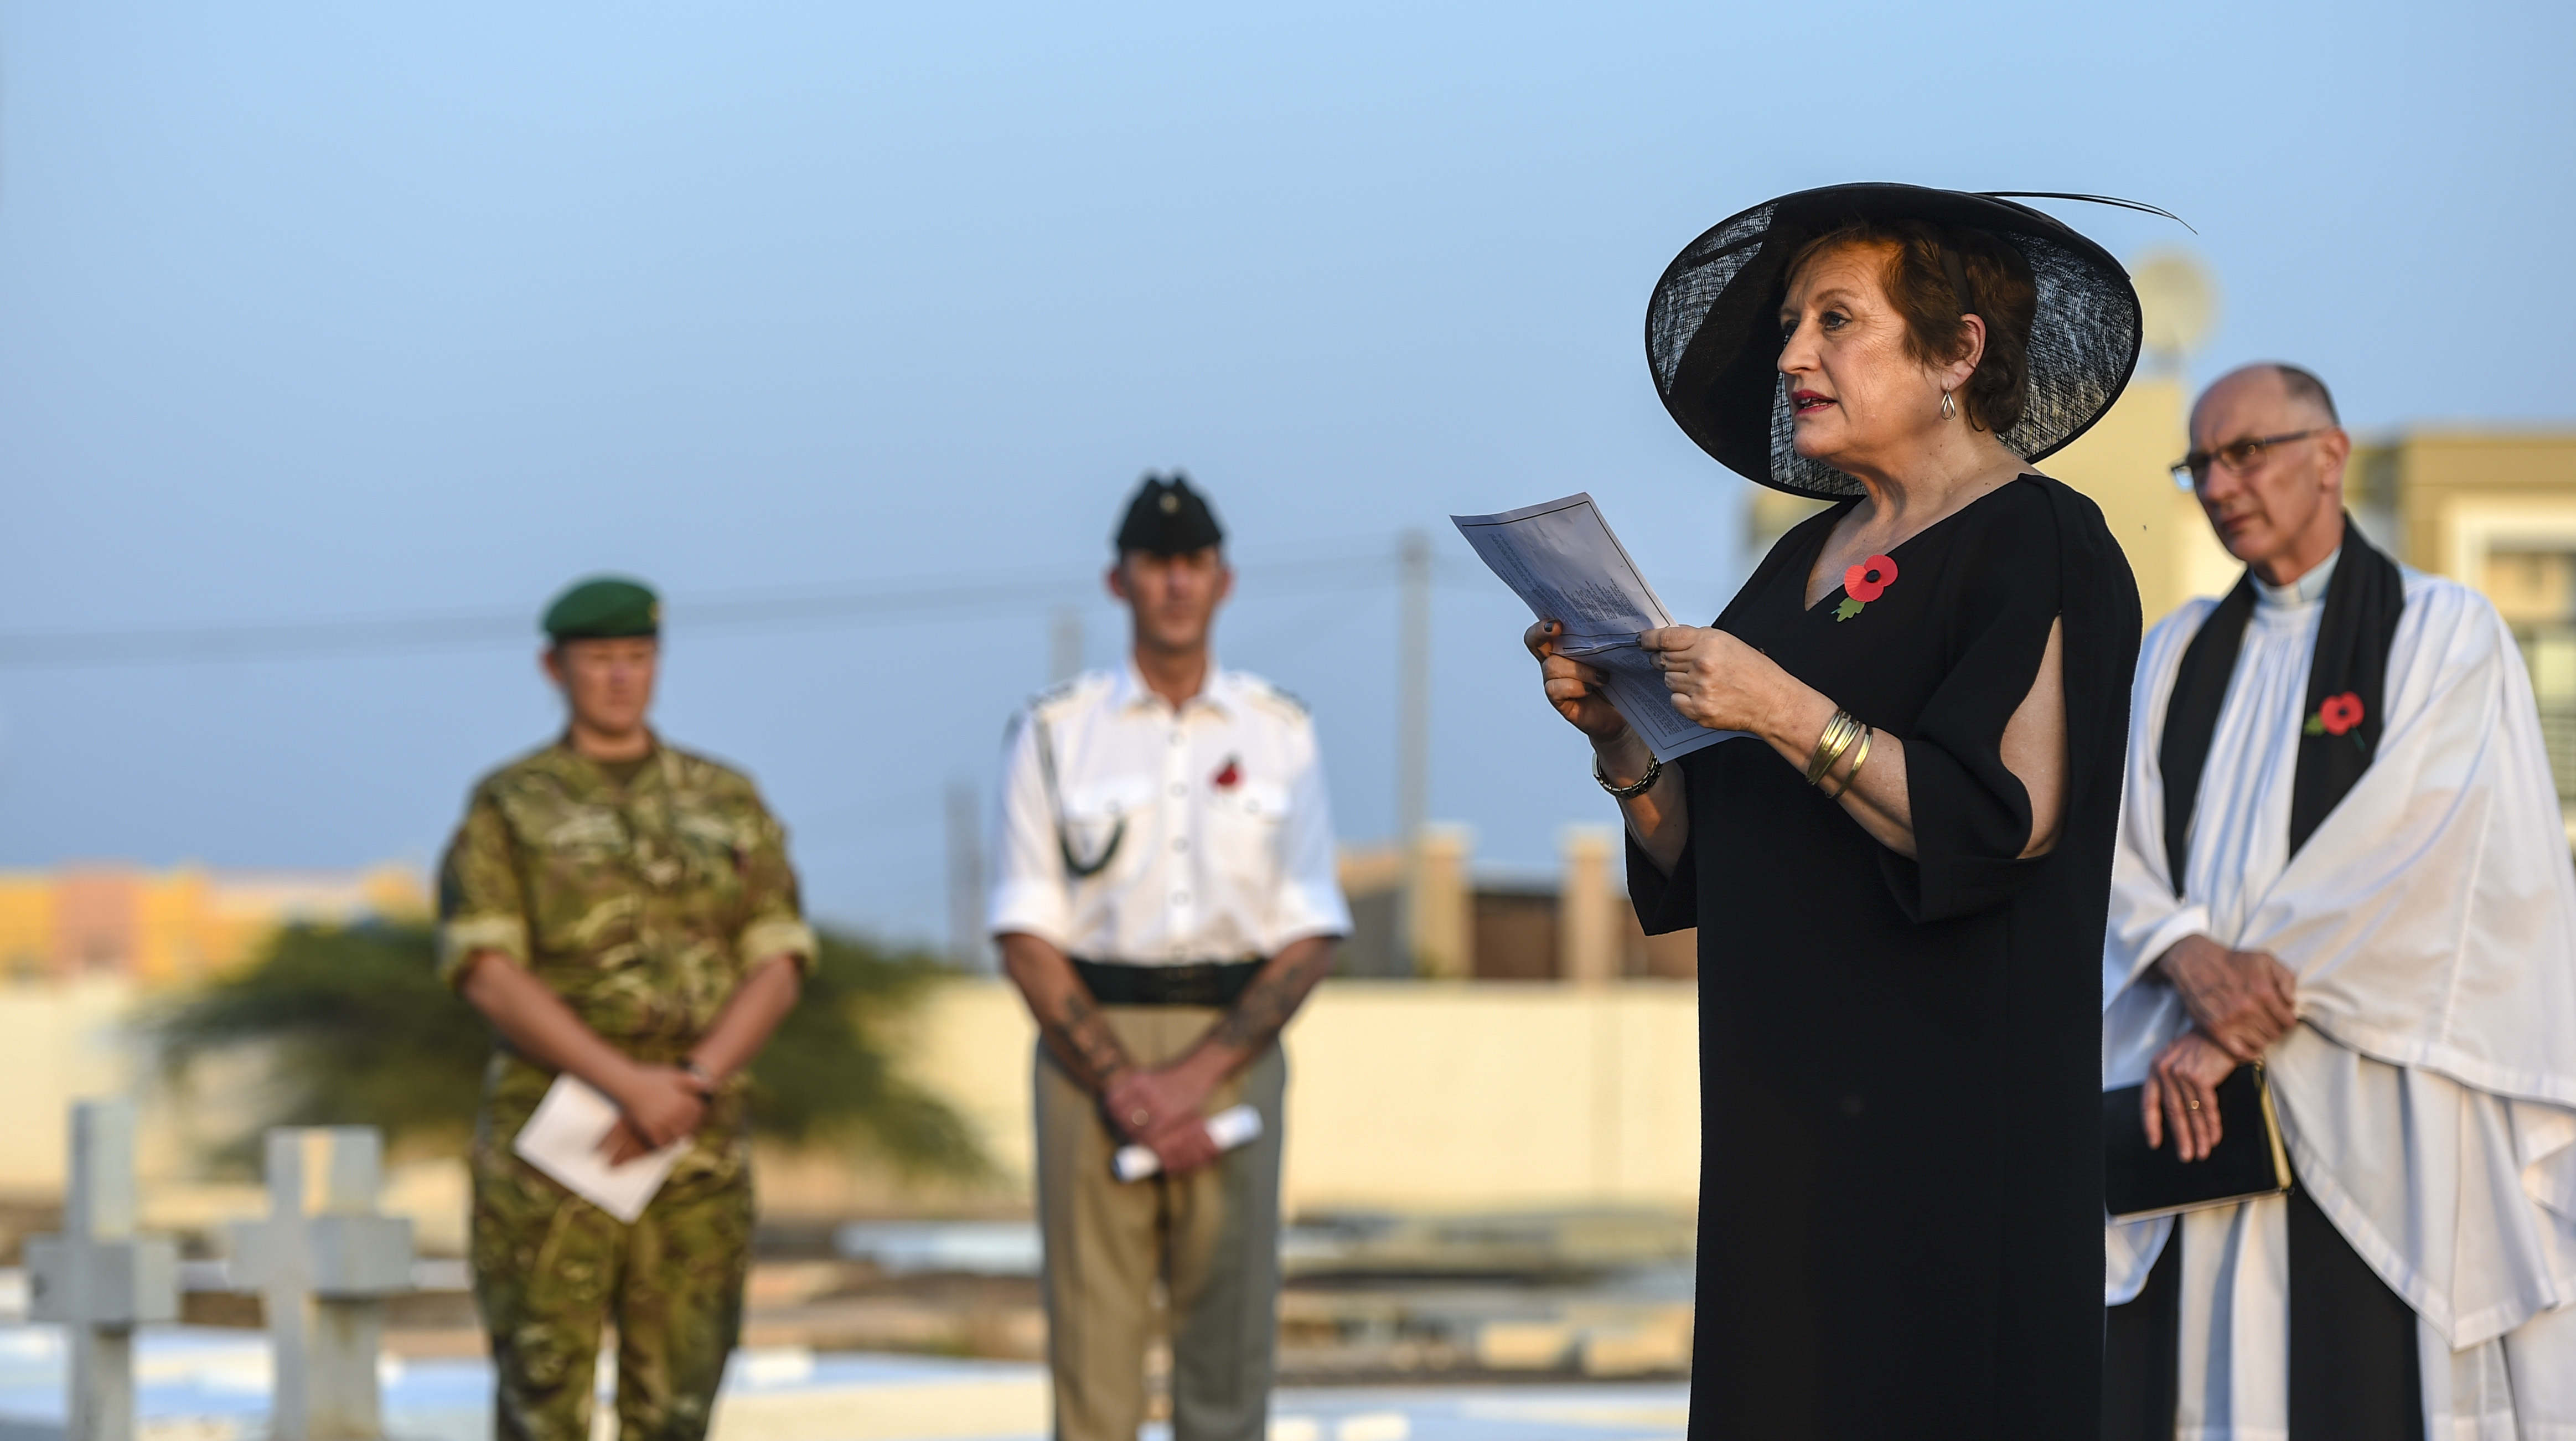 Susanna Moorehead, British Ambassador to Djibouti, speaks to attendees of a Remembrance Day ceremony at the Djibouti New European Cemetery near Camp Lemonnier, Djibouti, Nov. 7, 2017. Similar to Veterans Day in the United States and formerly known as Armistice Day, Remembrance Day, traditionally observed on November 11, was a day set aside to commemorate the day hostilities ceased on the western front during World War I. It has evolved to include service members who have lost their lives in service of their countries in all wars since. (U.S. Air Force photo by Staff Sgt. Timothy Moore)